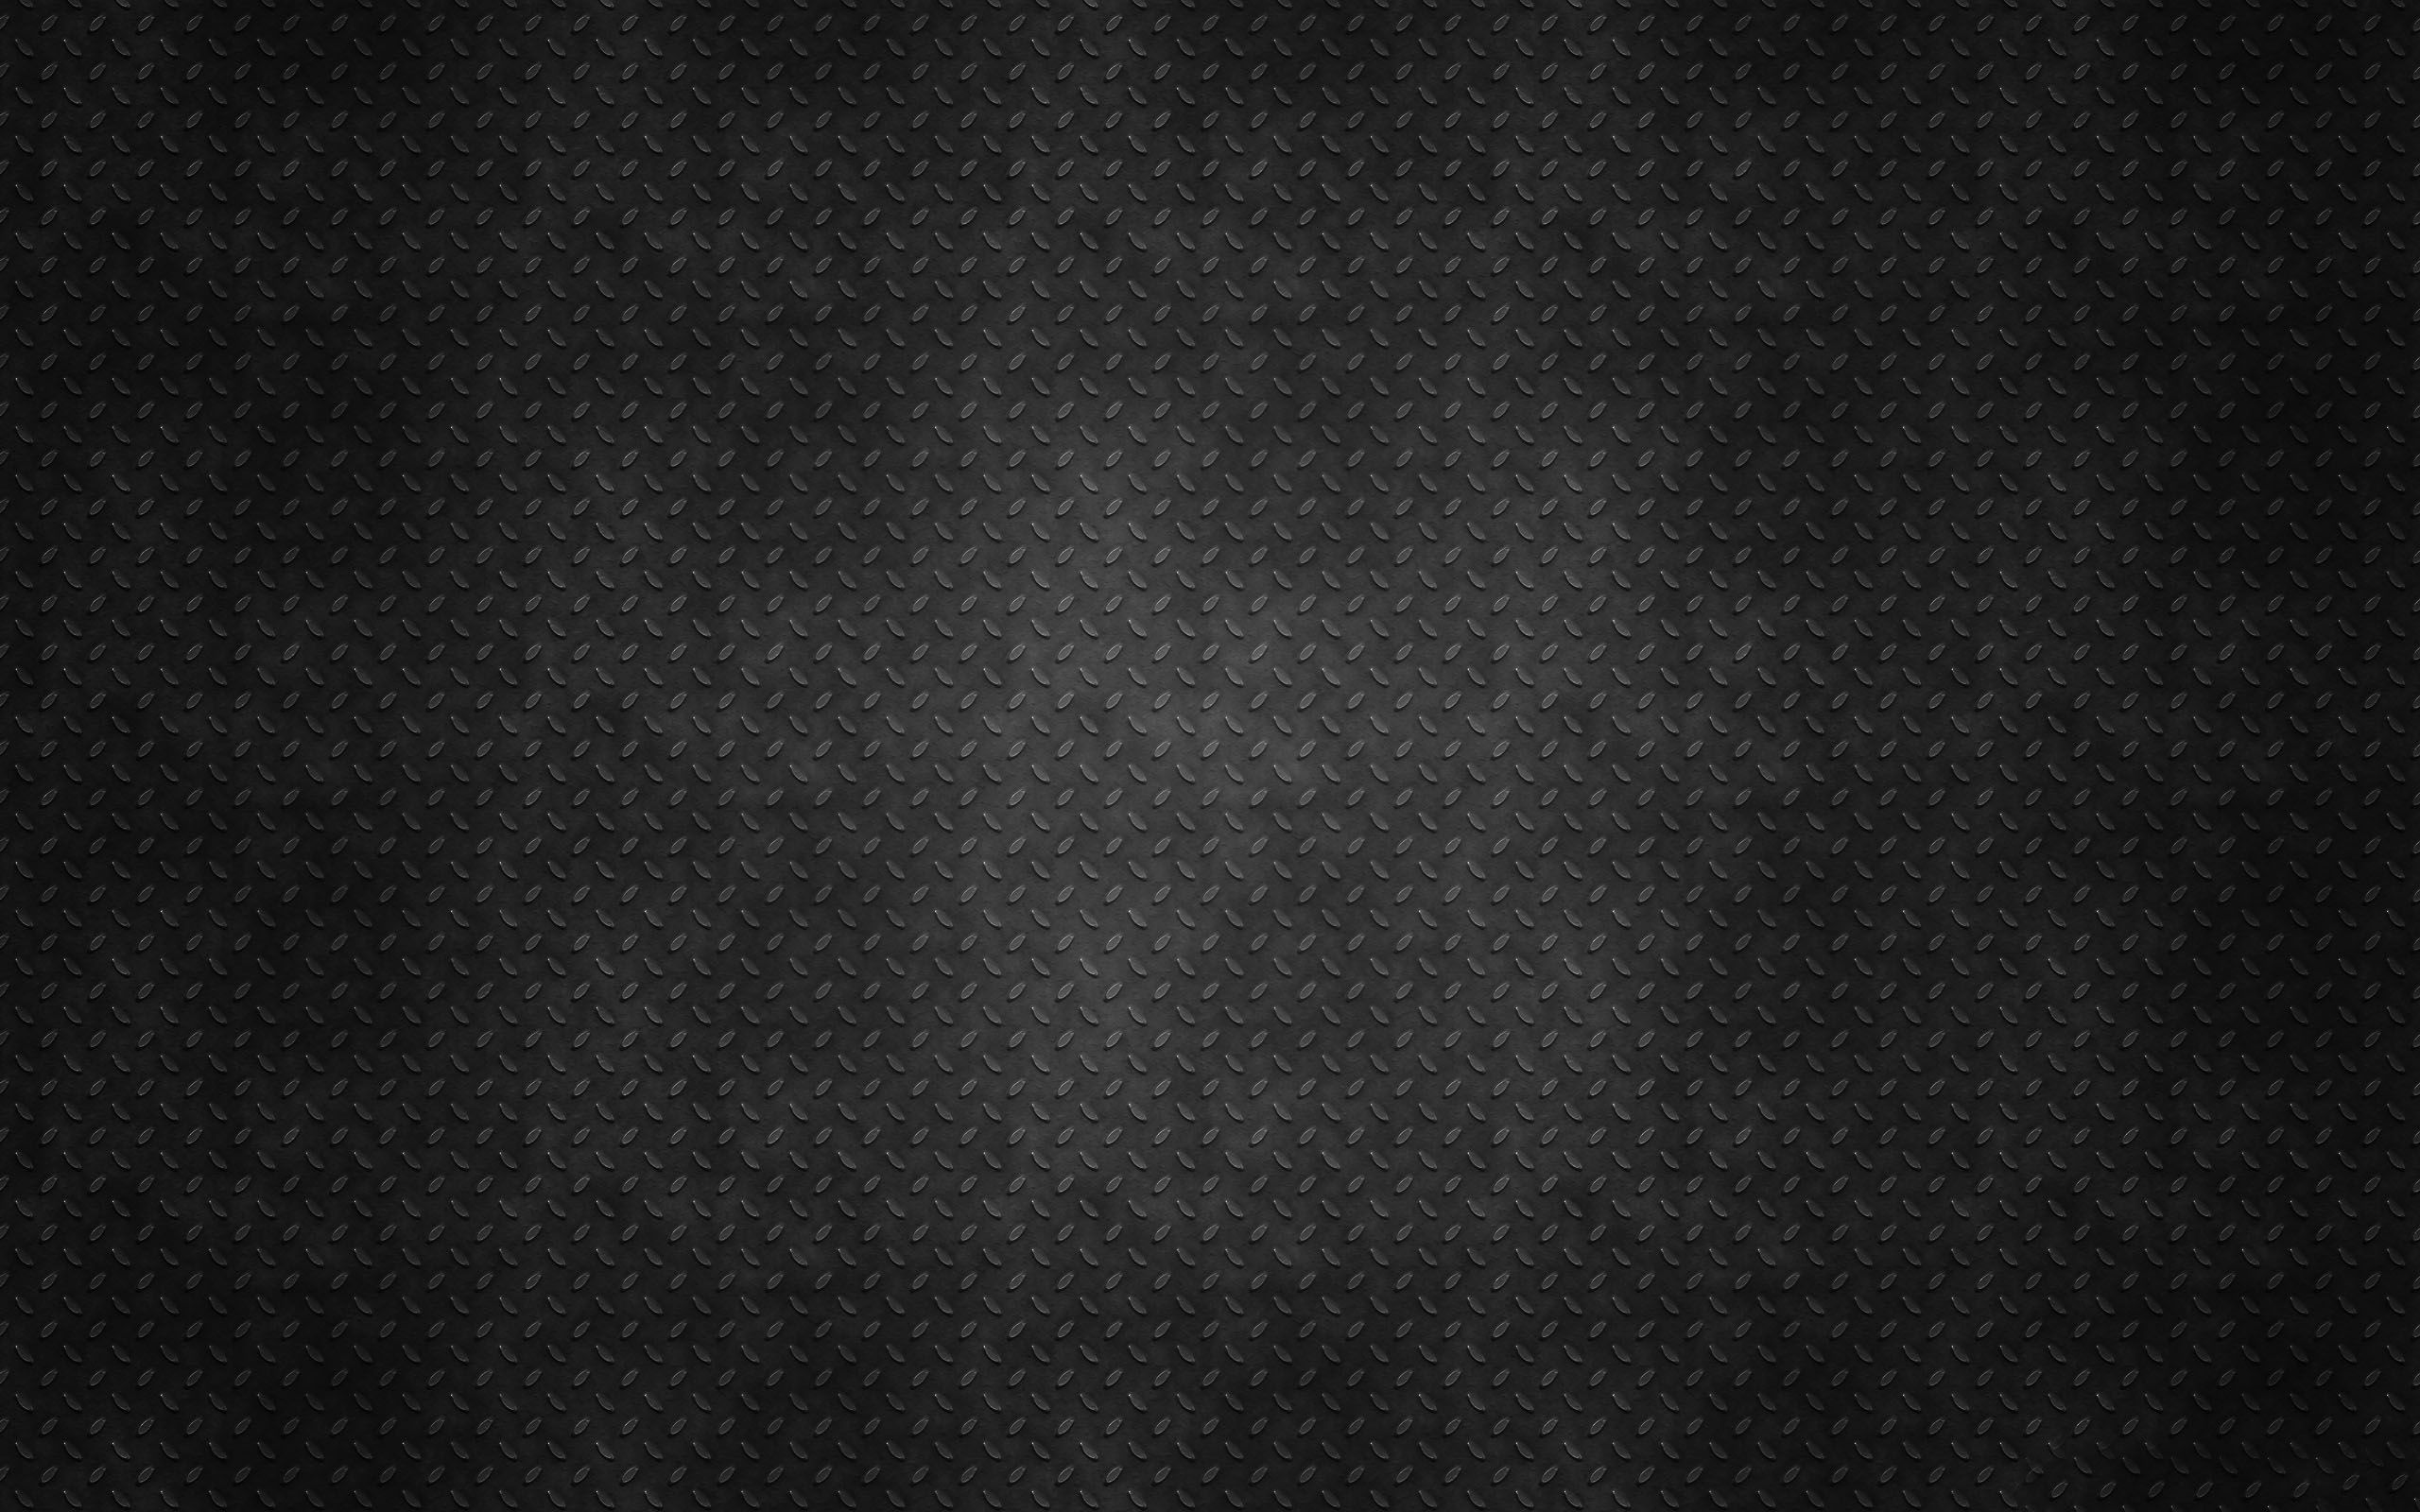 black hd background background wallpapers abstract photo cool black 2560x1600